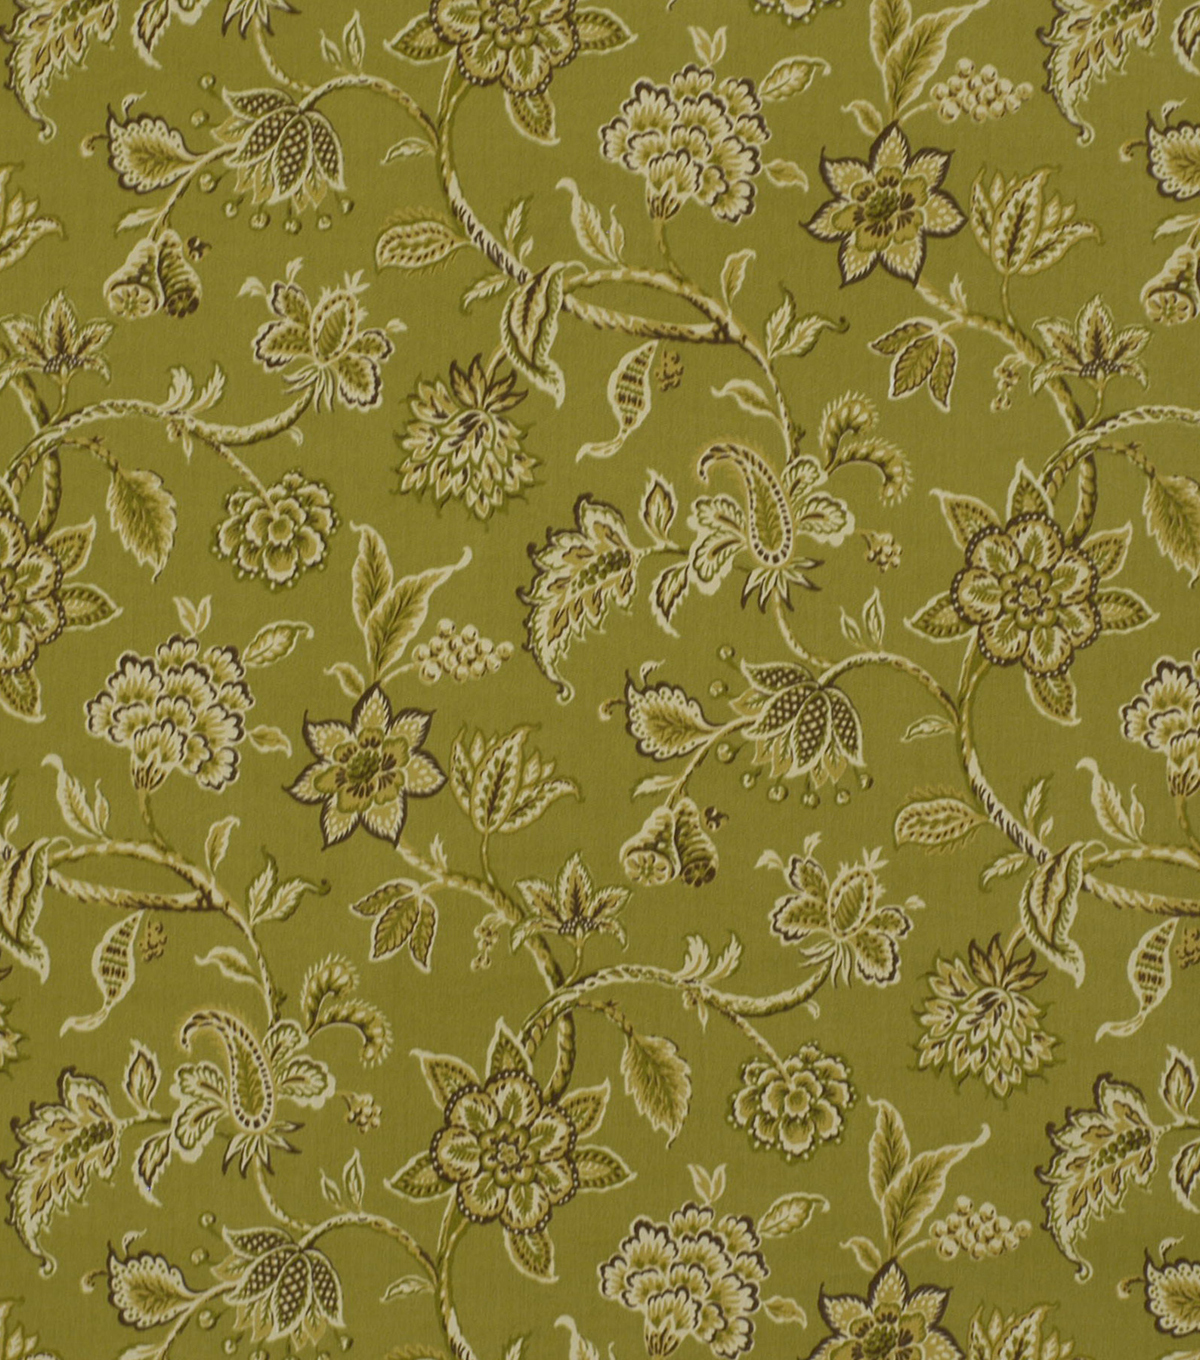 Home Decor 8\u0022x8\u0022 Fabric Swatch-Outdoor FabricSea Breeze Fennel